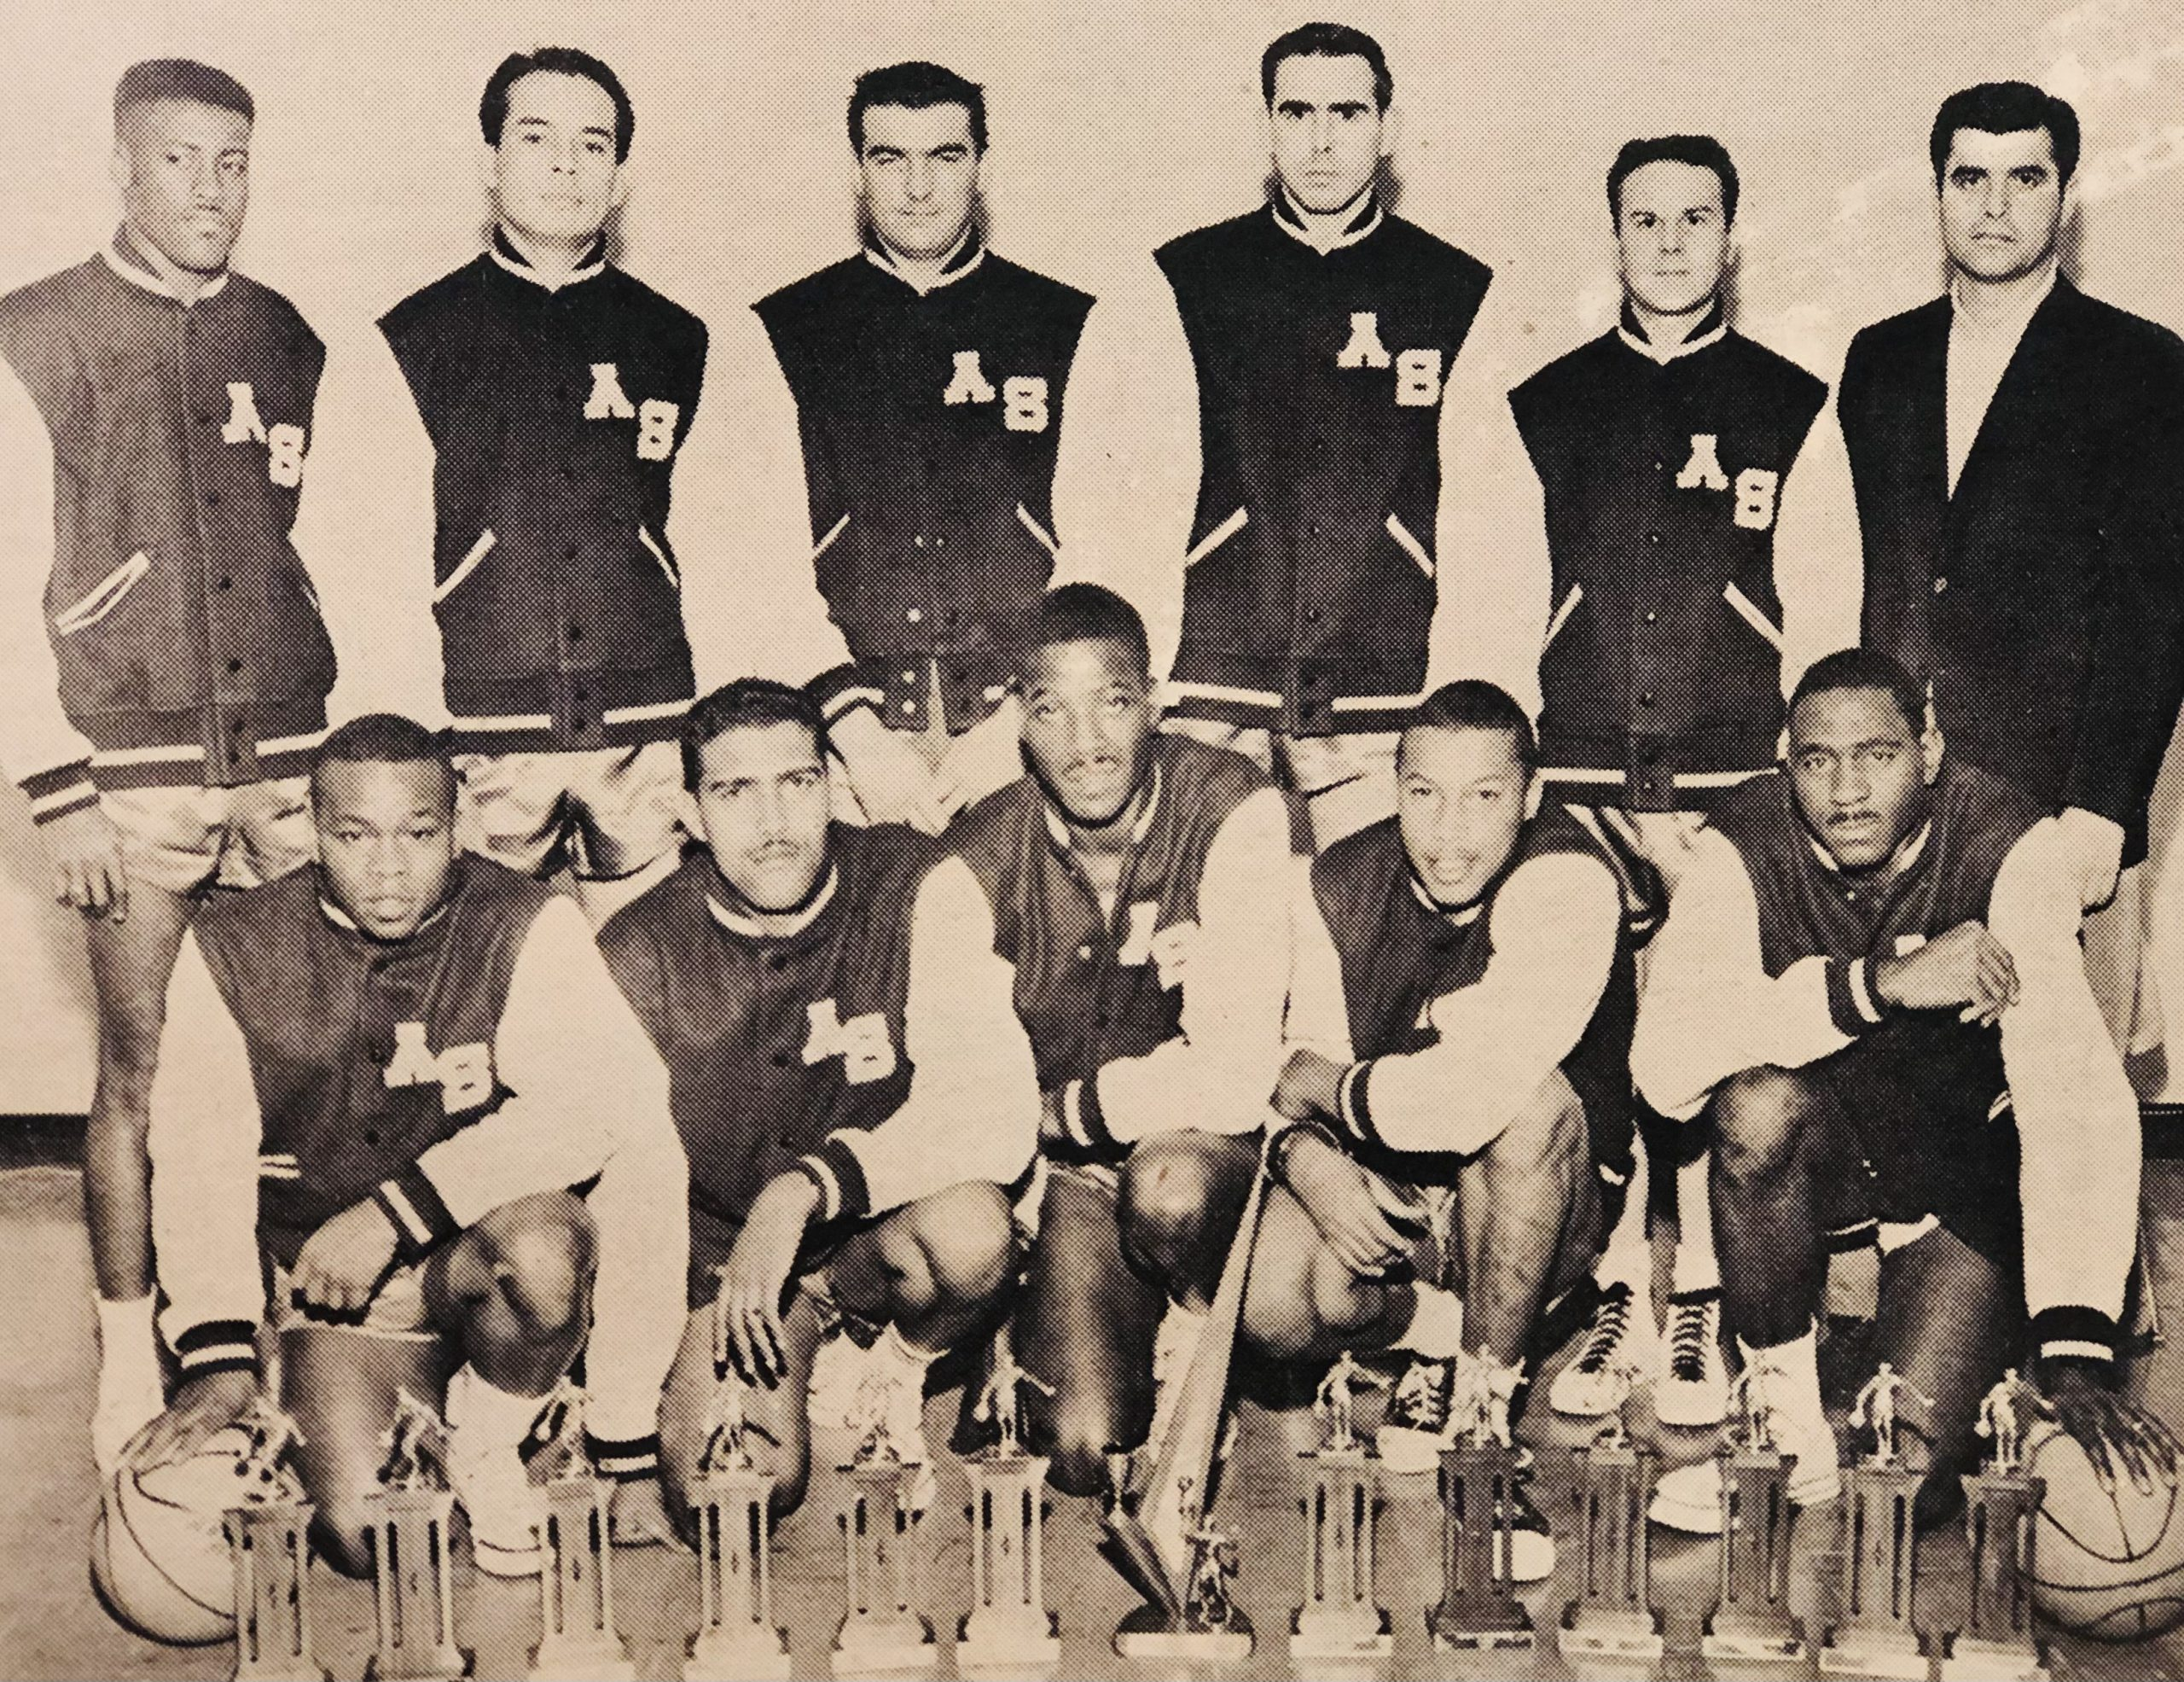 When the IAM Used Sports to Break Racial Barriers